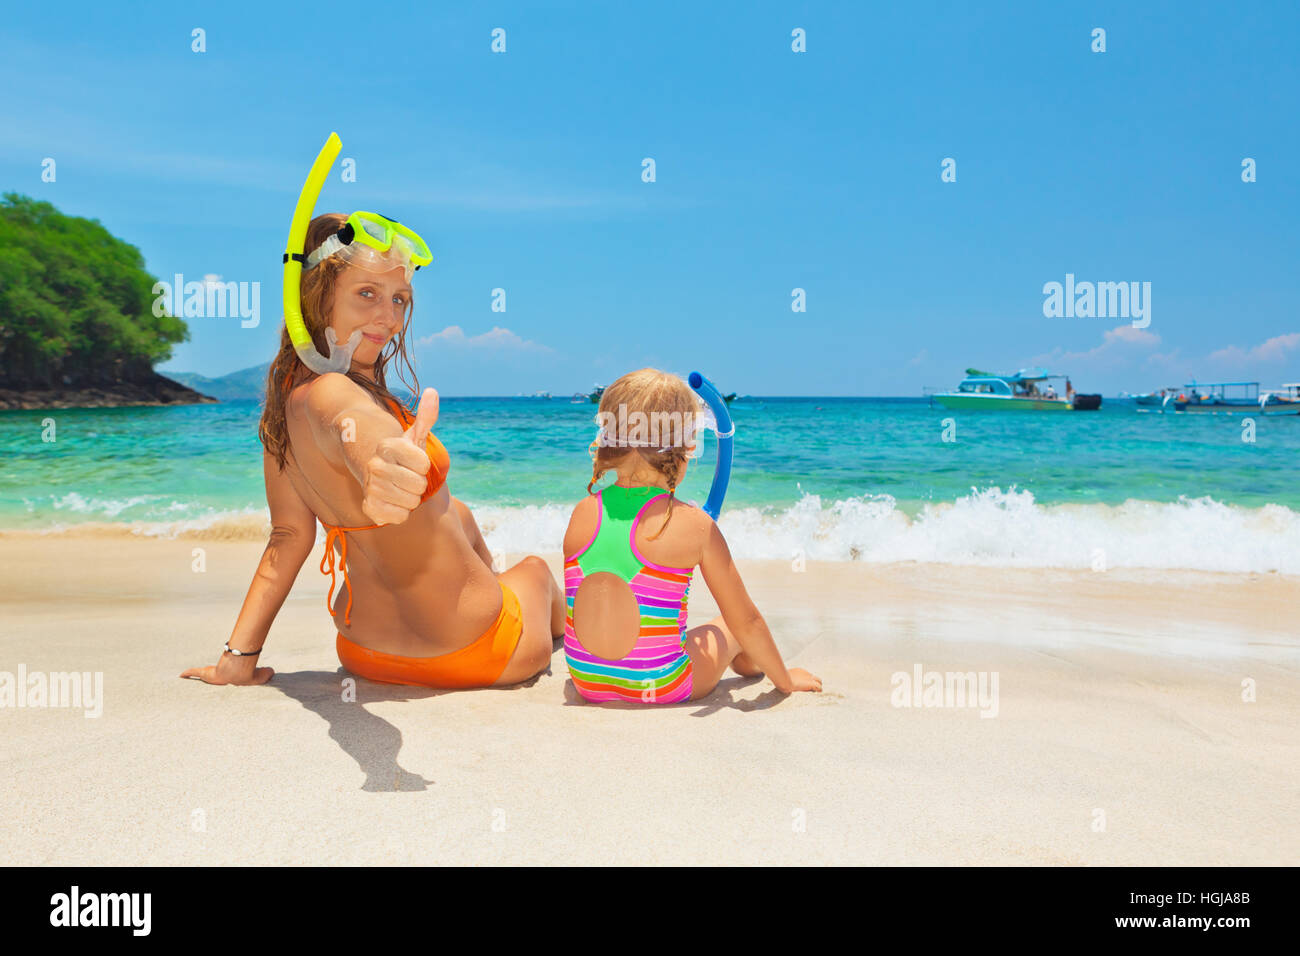 Happy family - mother with baby girl have fun in beach pool with sea surf. Travel  lifestyle, people water sport - Stock Image